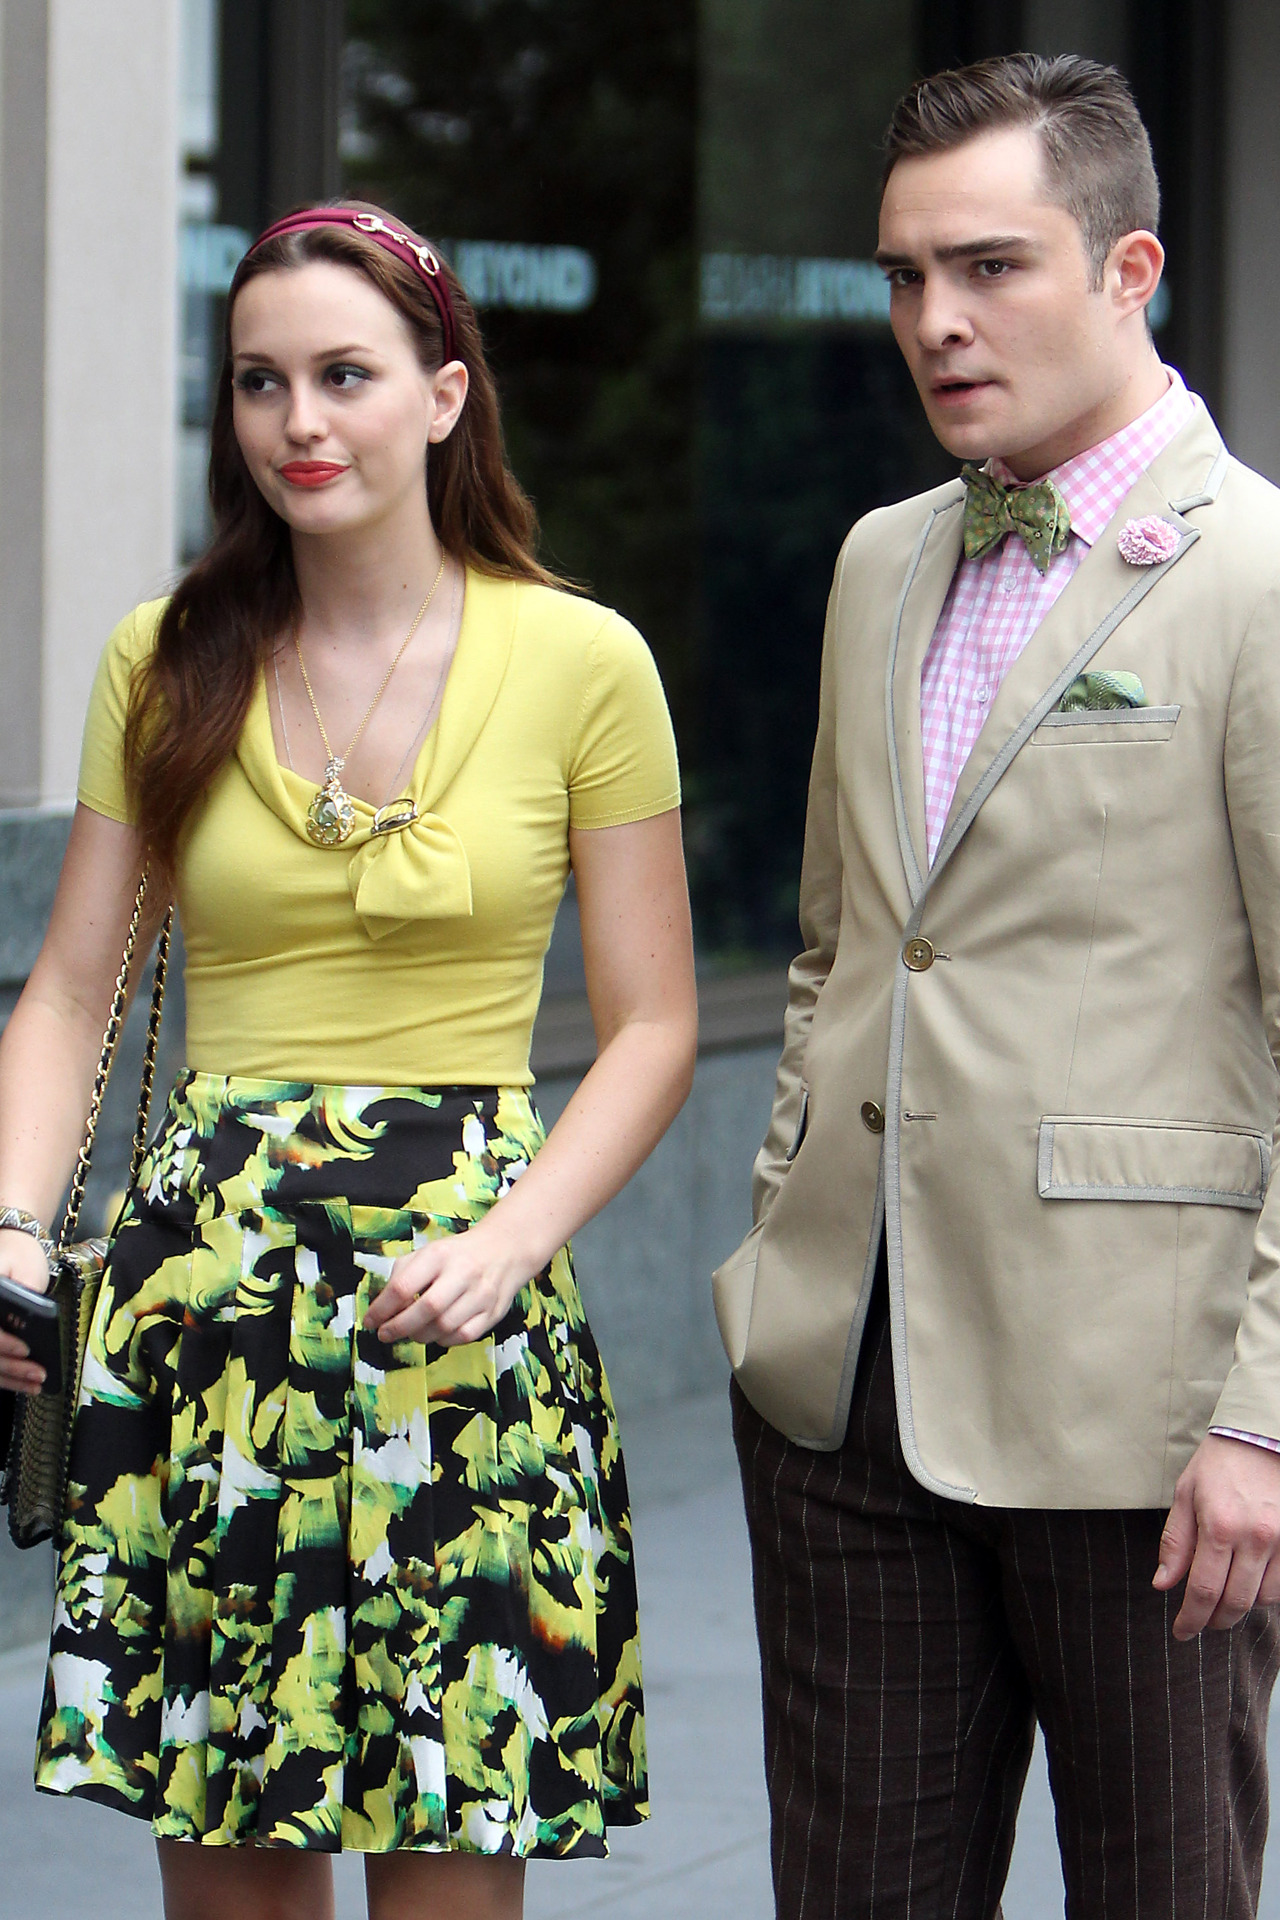 aclockworkpink:  Leighton Meester and Ed Westwick on the set of Gossip Girl, August 11th, 2012